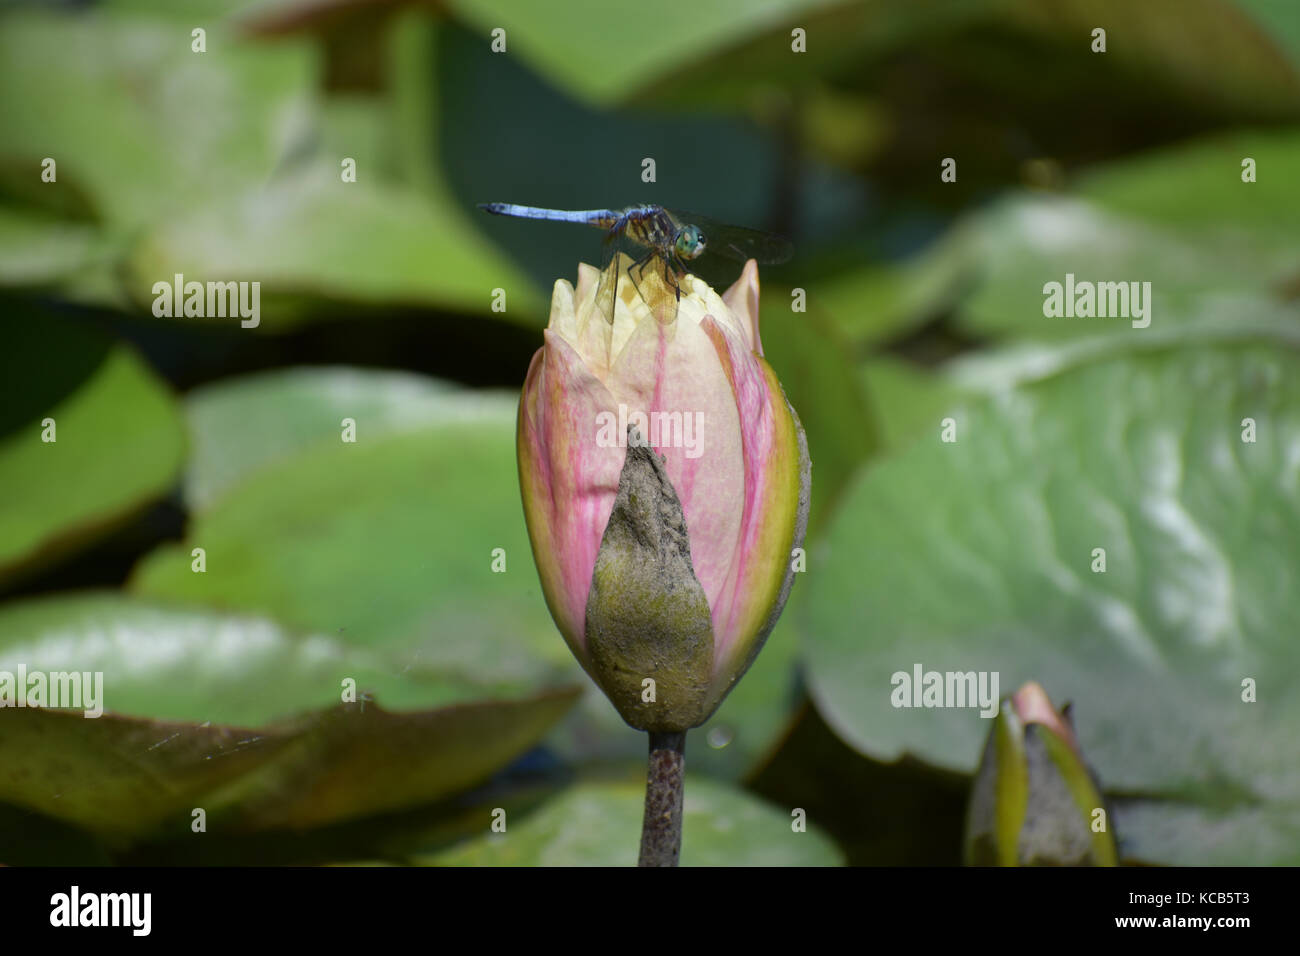 Lotus Flower Dragonfly Blooming Stock Photos Lotus Flower